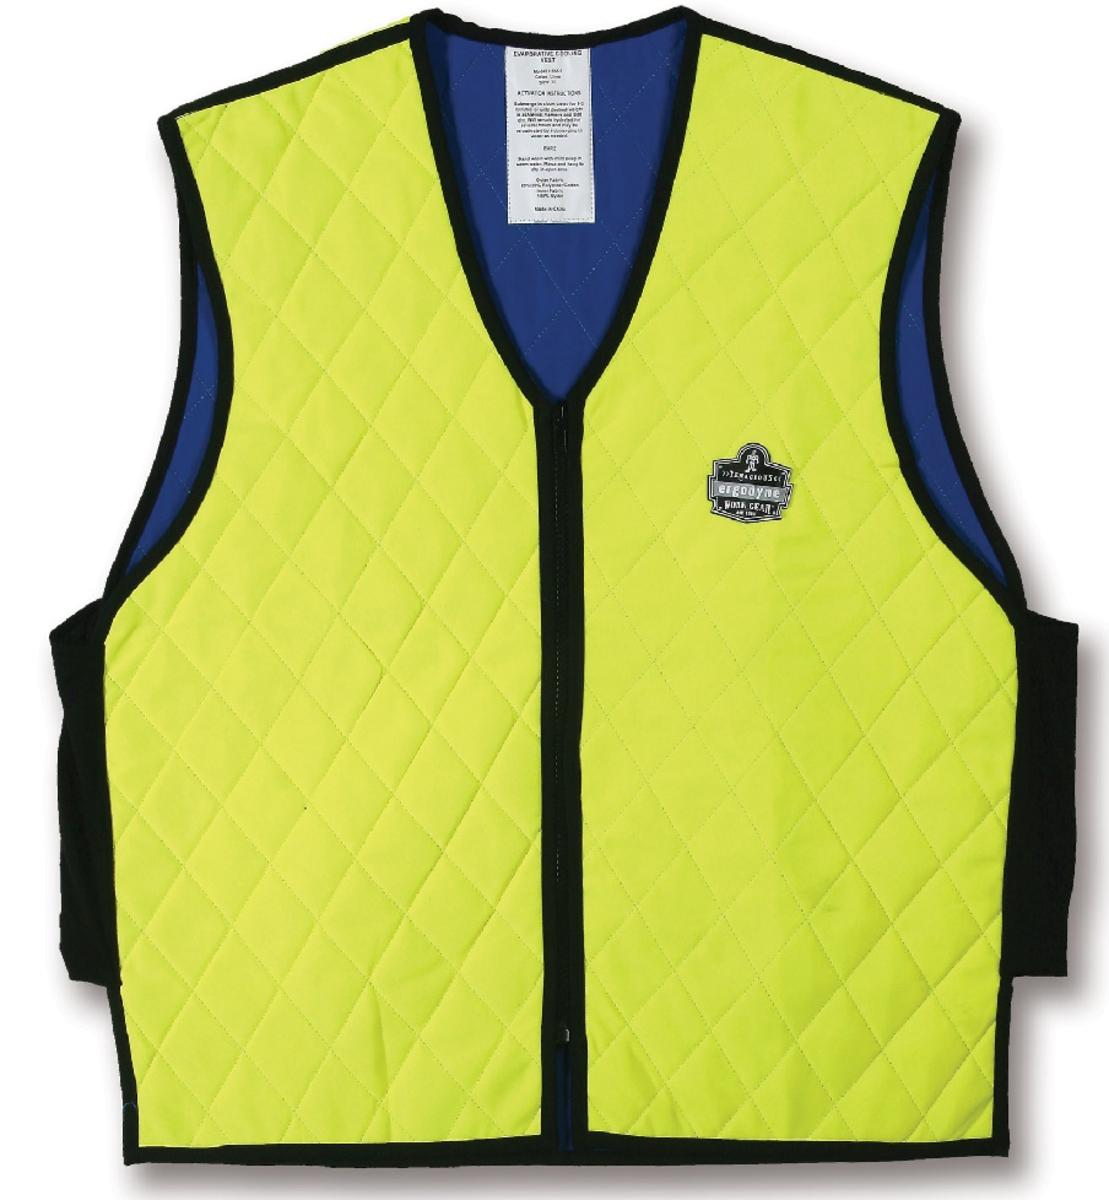 f5dab056ed987 Ergodyne Chill-Its 6665L Evaporative Cooling Vest - Hi-Viz Lime - The  Warming Store